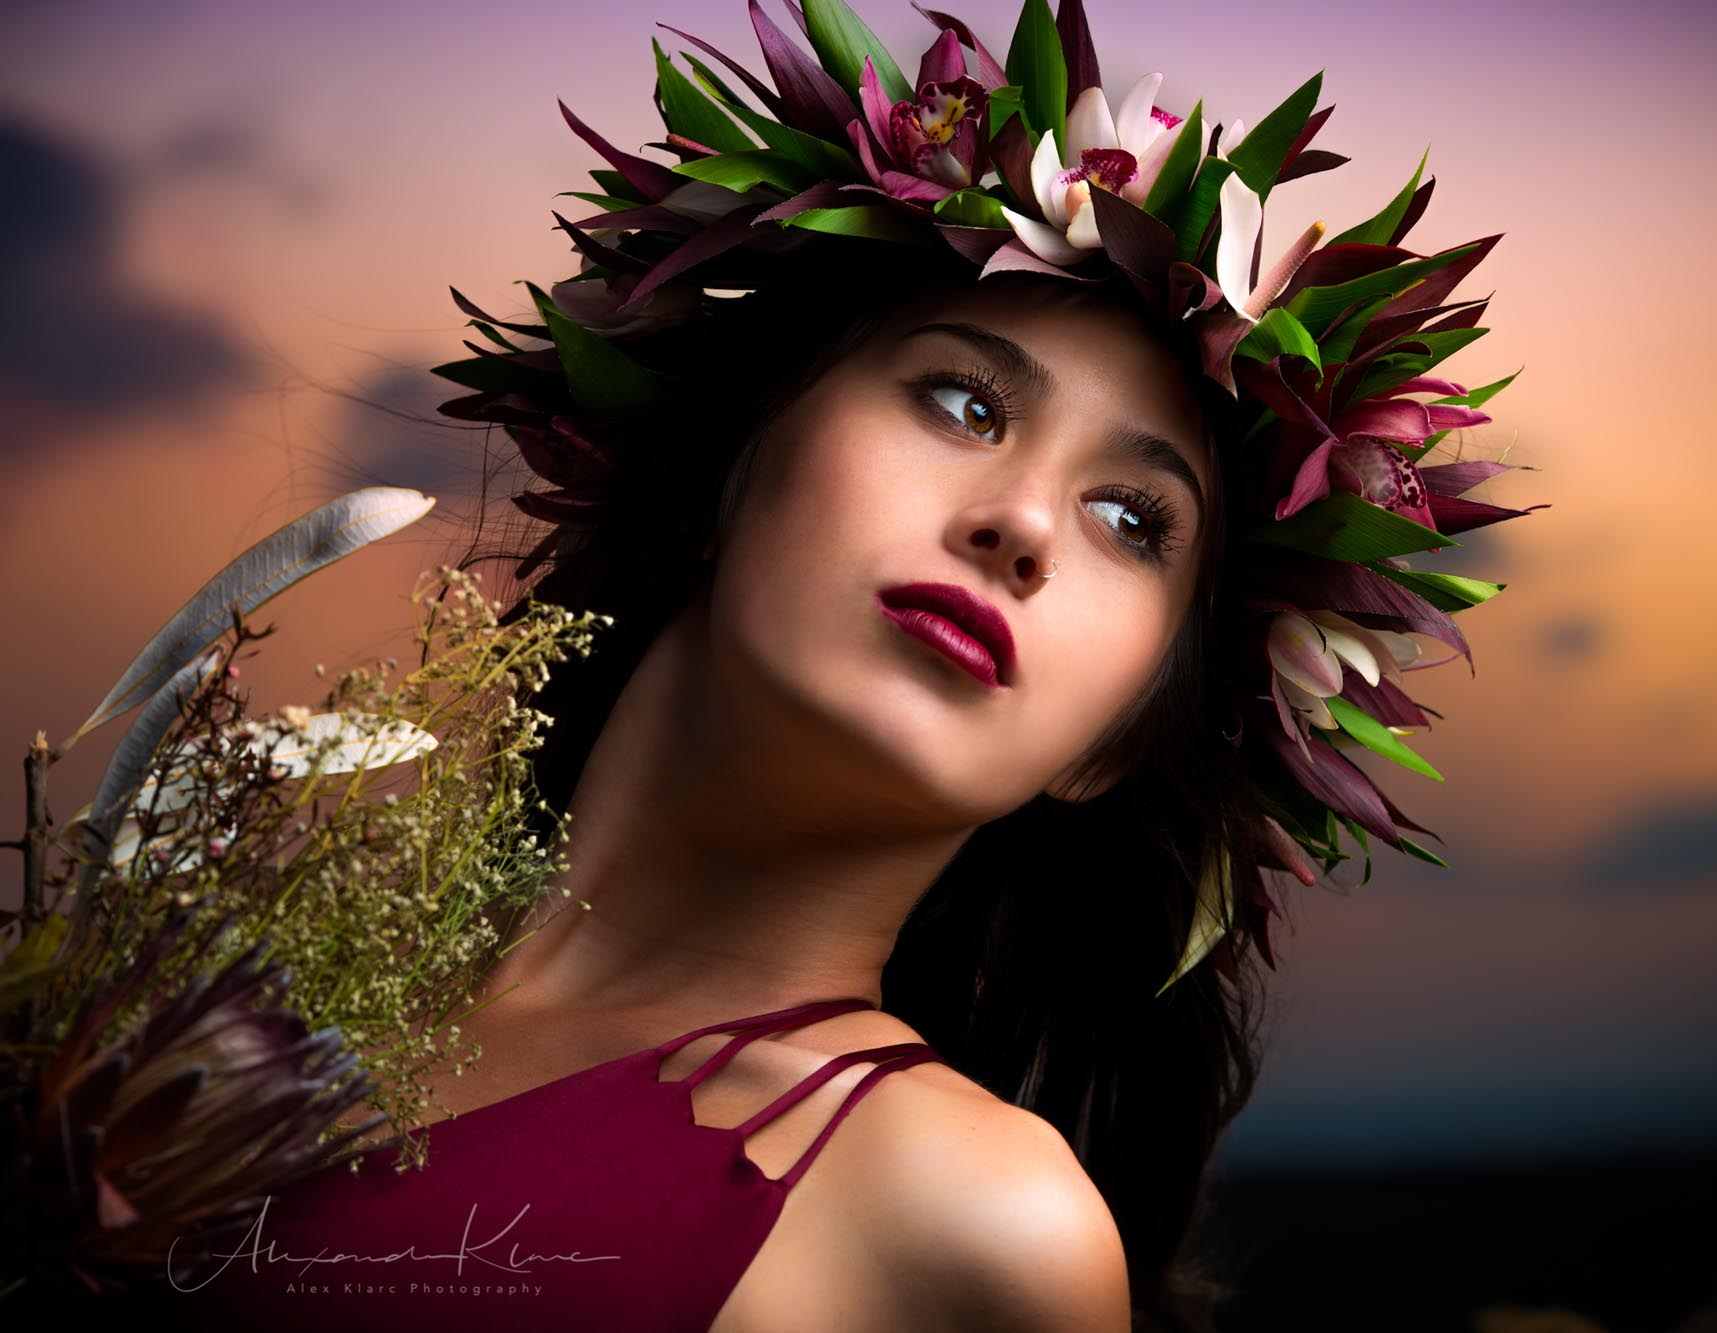 hawaii-sunset-flowers-model-elopement-©-klarcmiyako-Photography.jpg